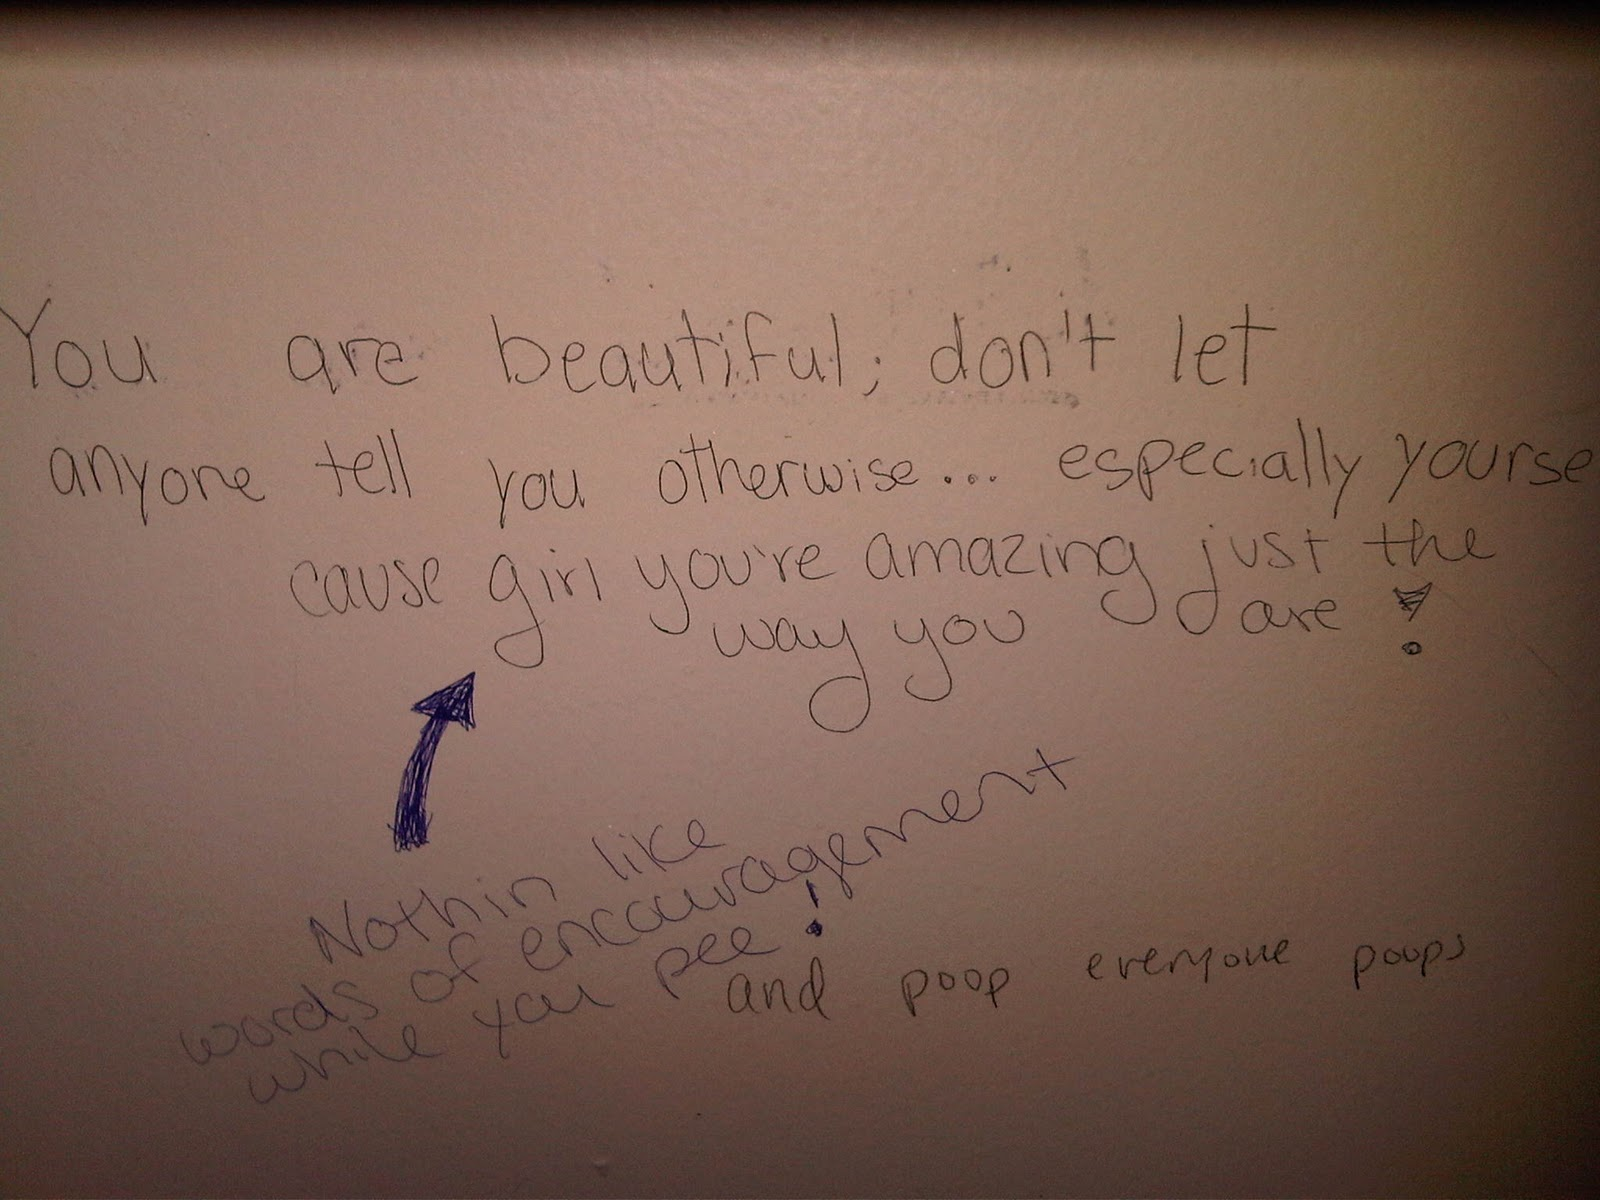 I Tend To Not Feel My Most Beautiful While In A Bathroom Stall The Library So This Author Really Understood When Capture Her Audience